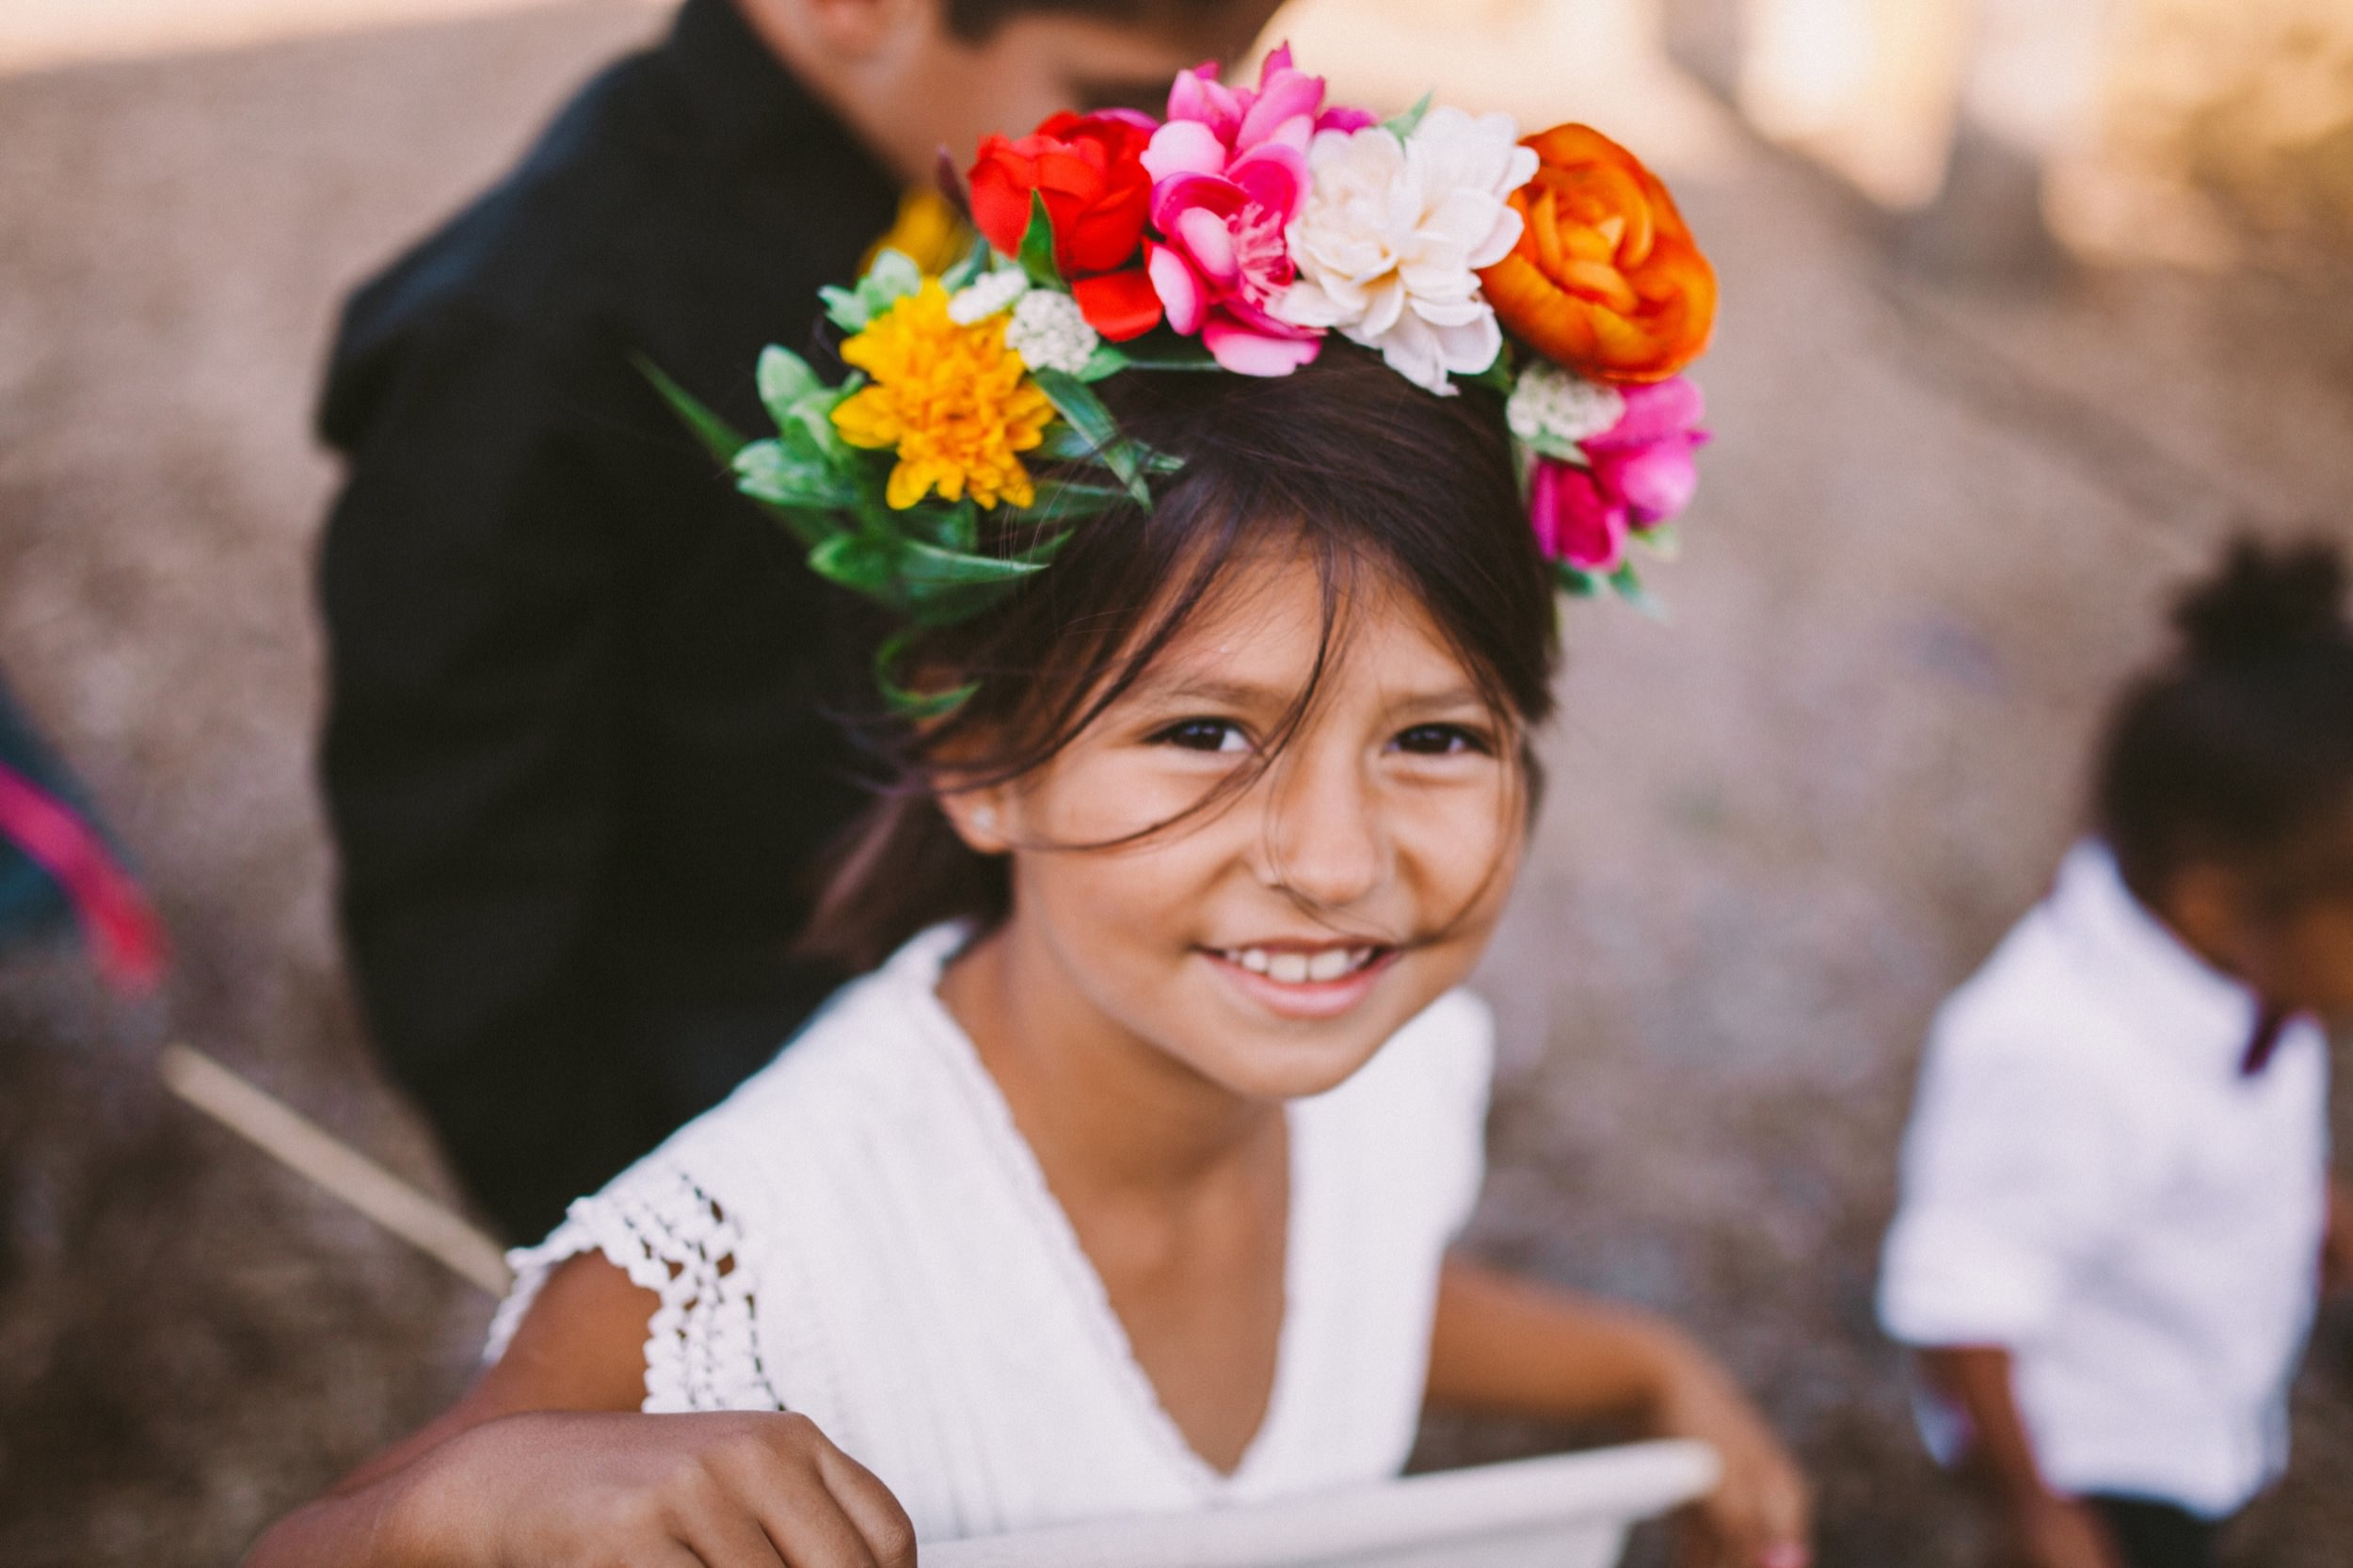 Flower Girl with Vibrant, Colorful Flower Crown for Wedding